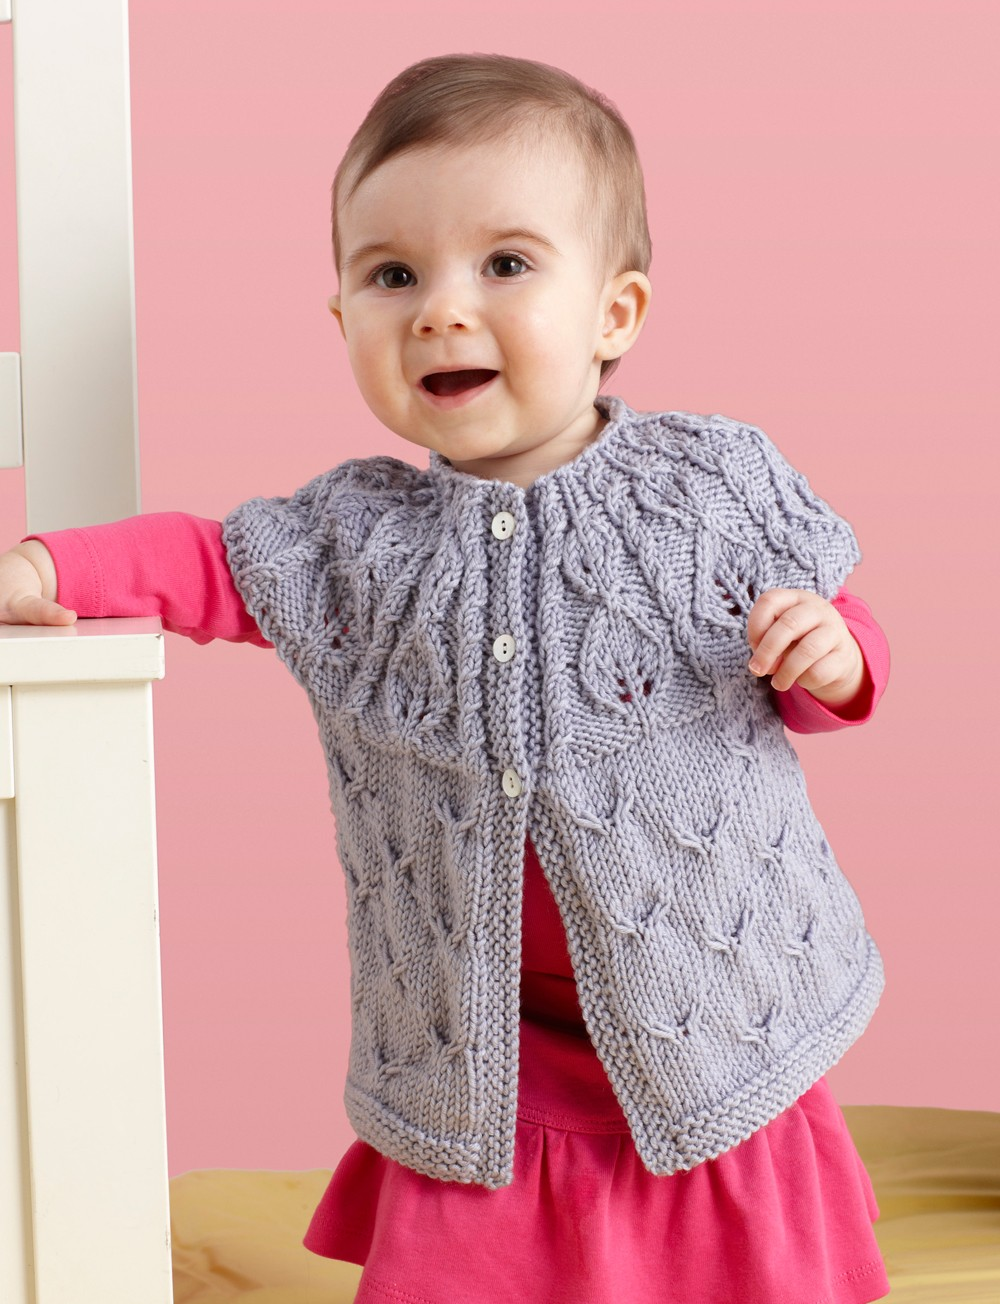 Knitting Patterns For Cardigan Sweaters : 10+ Free Baby Sweater Knitting Patterns